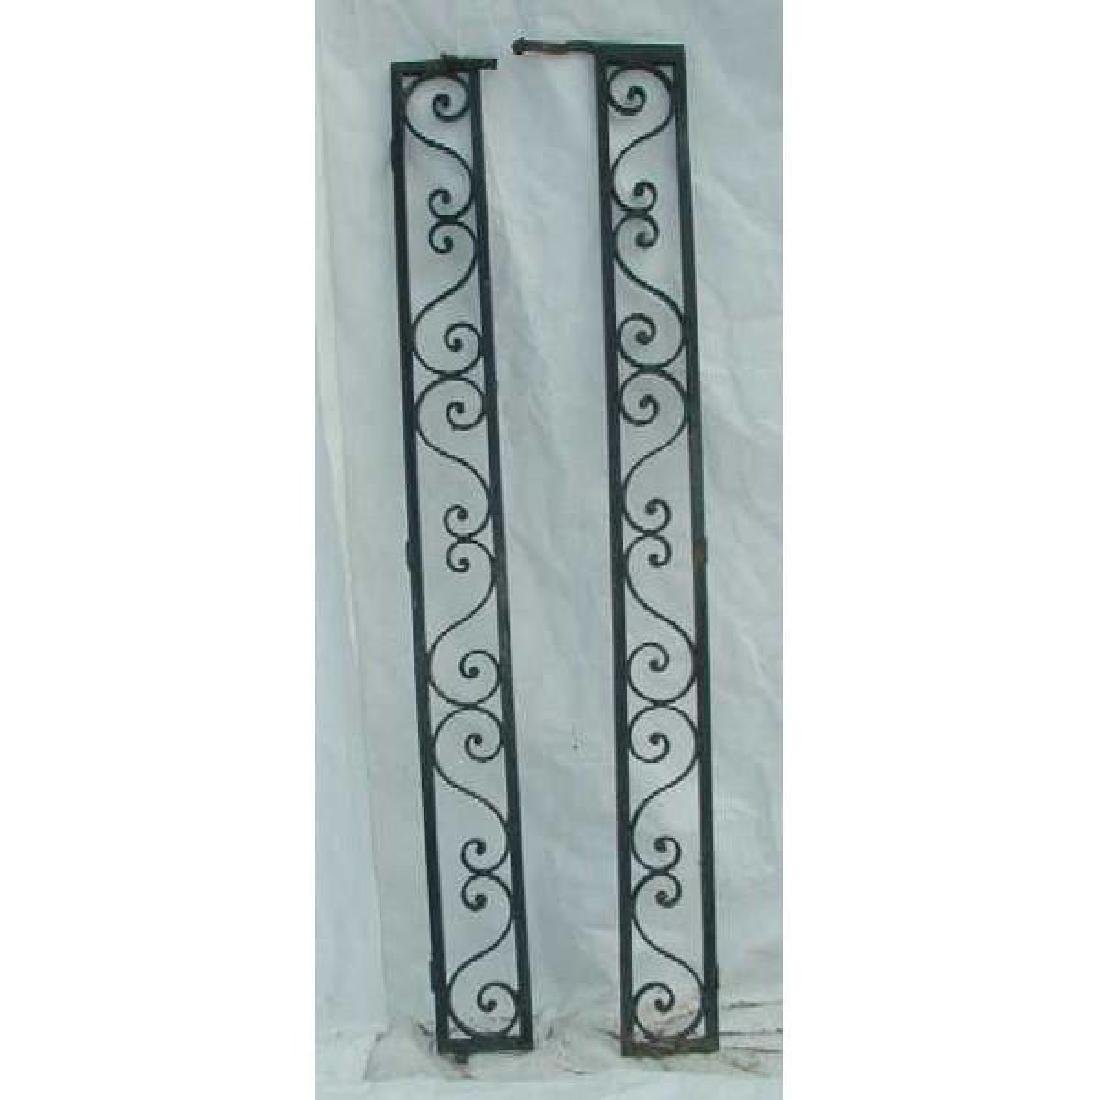 Pair of American Wrought Iron Grille Panels